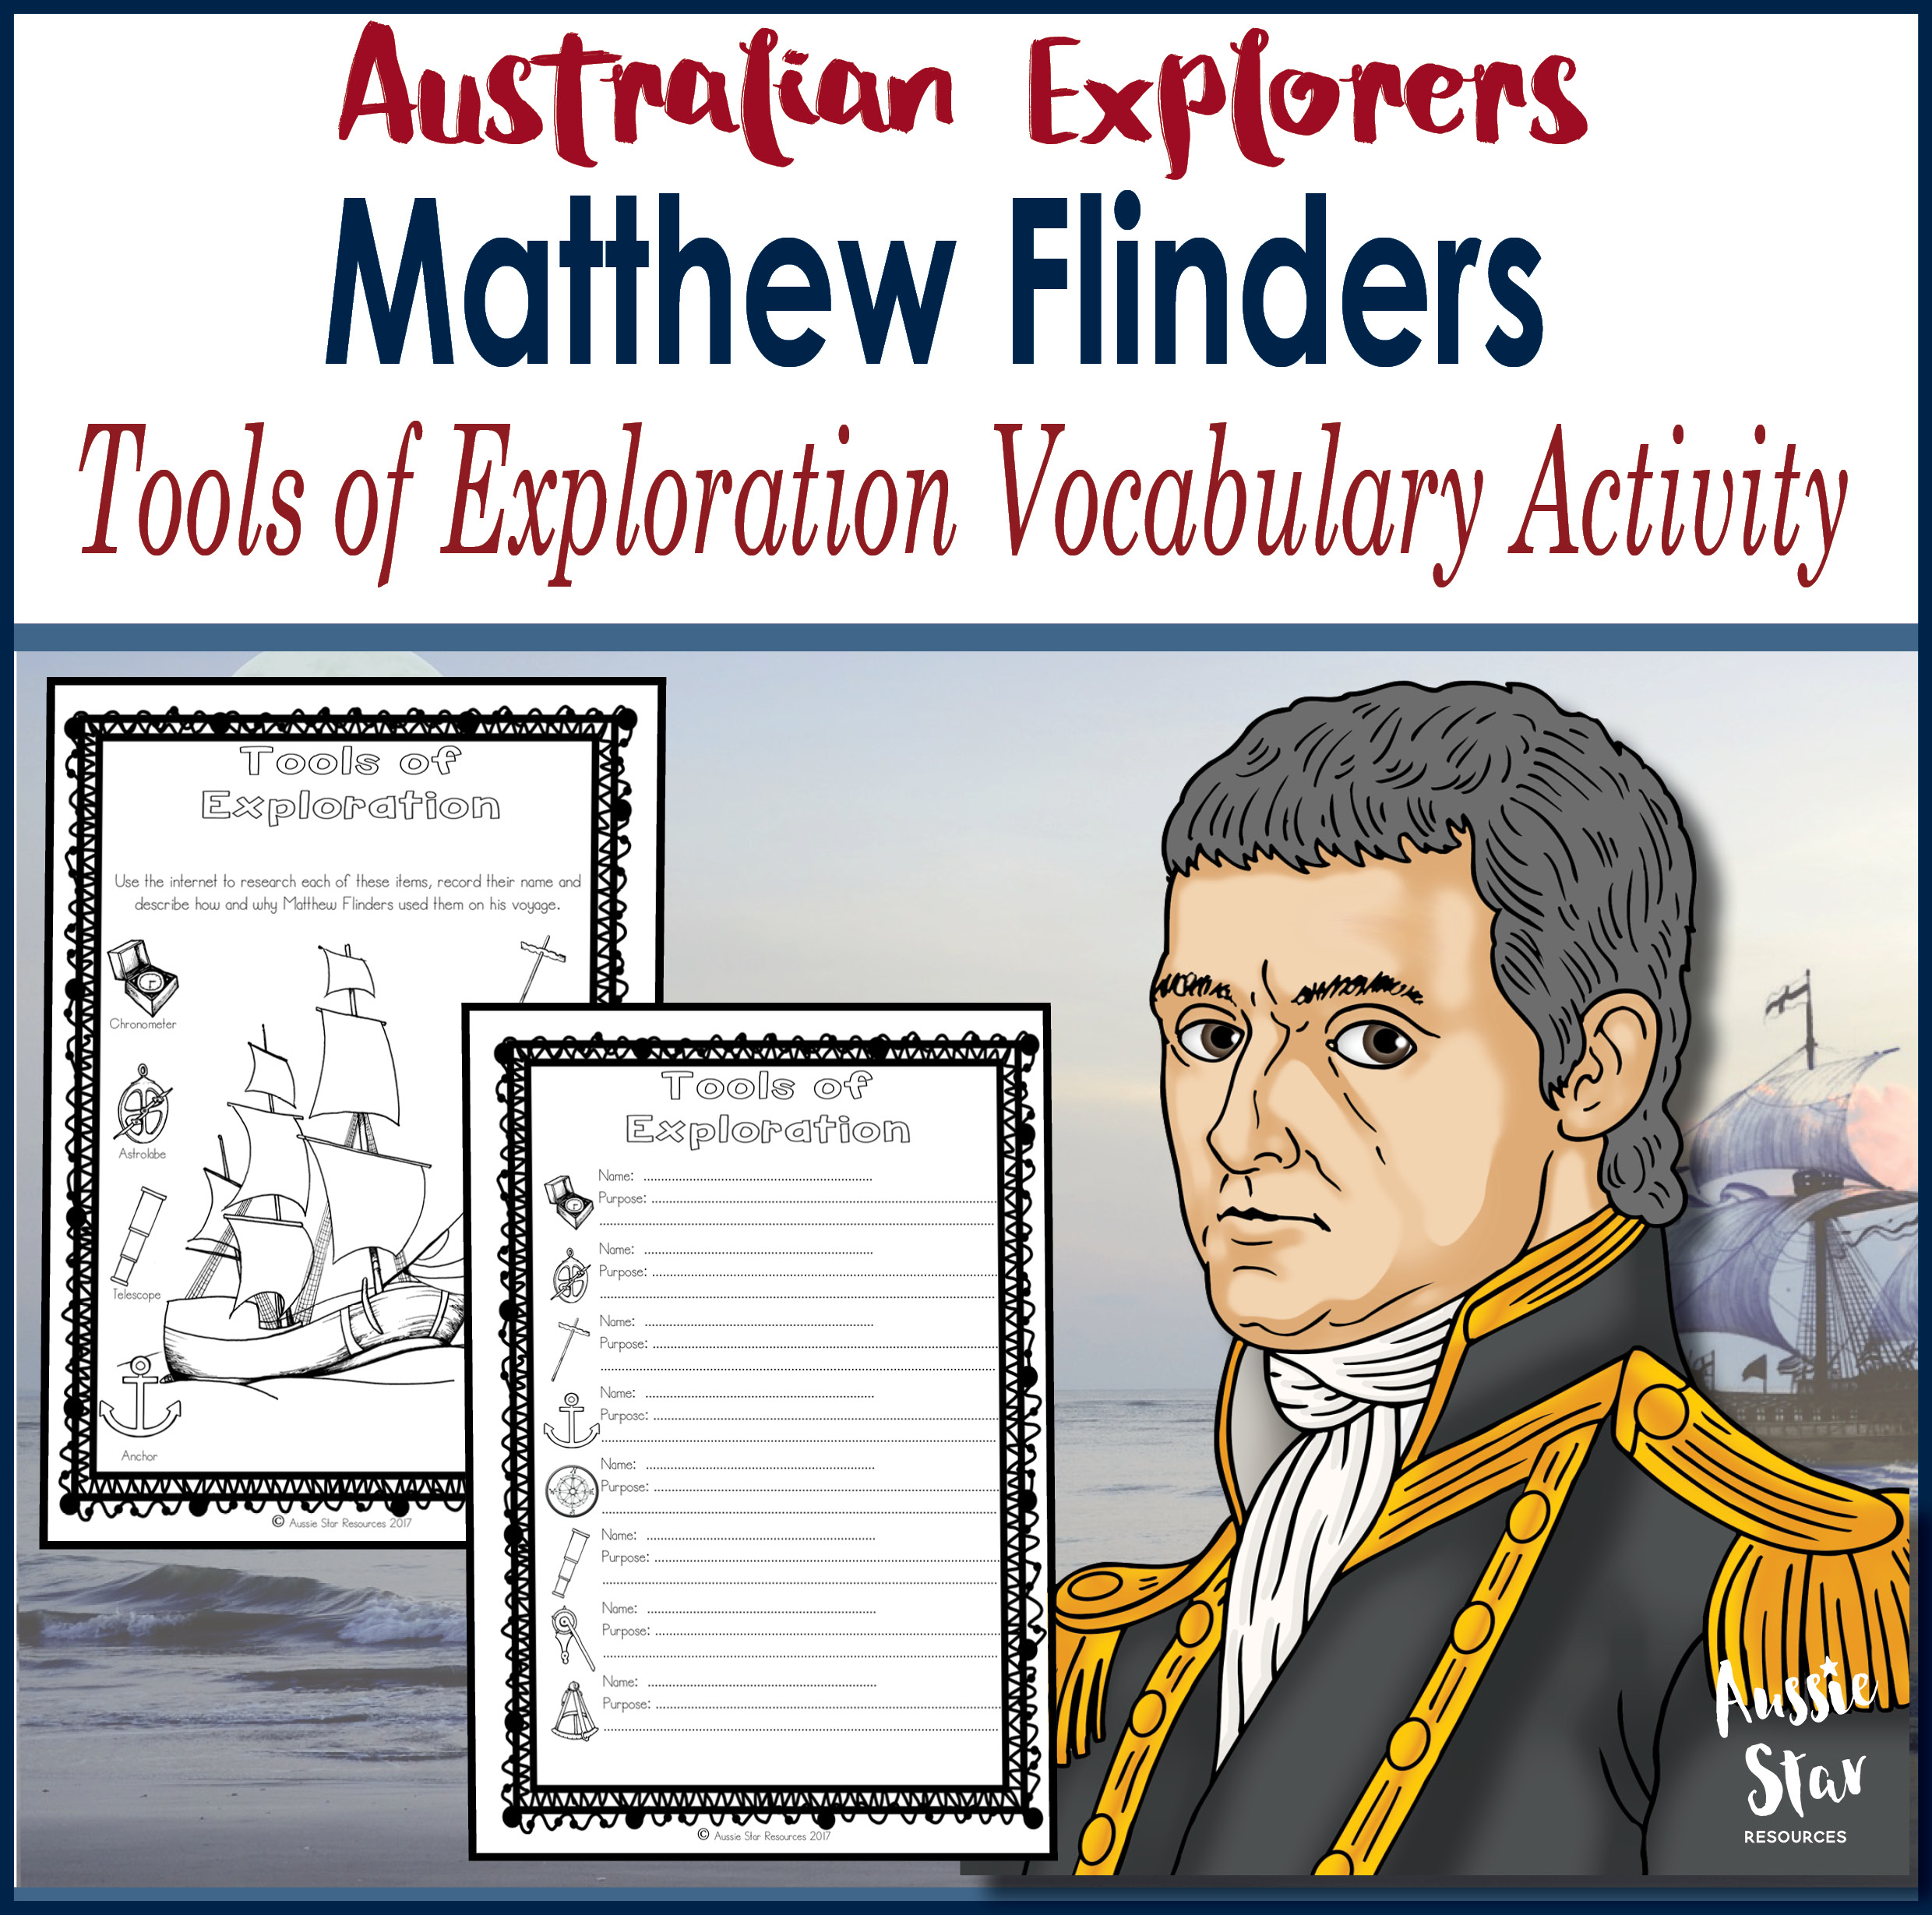 Matthew Flinders Tools of Exploration Vocabulary Activity